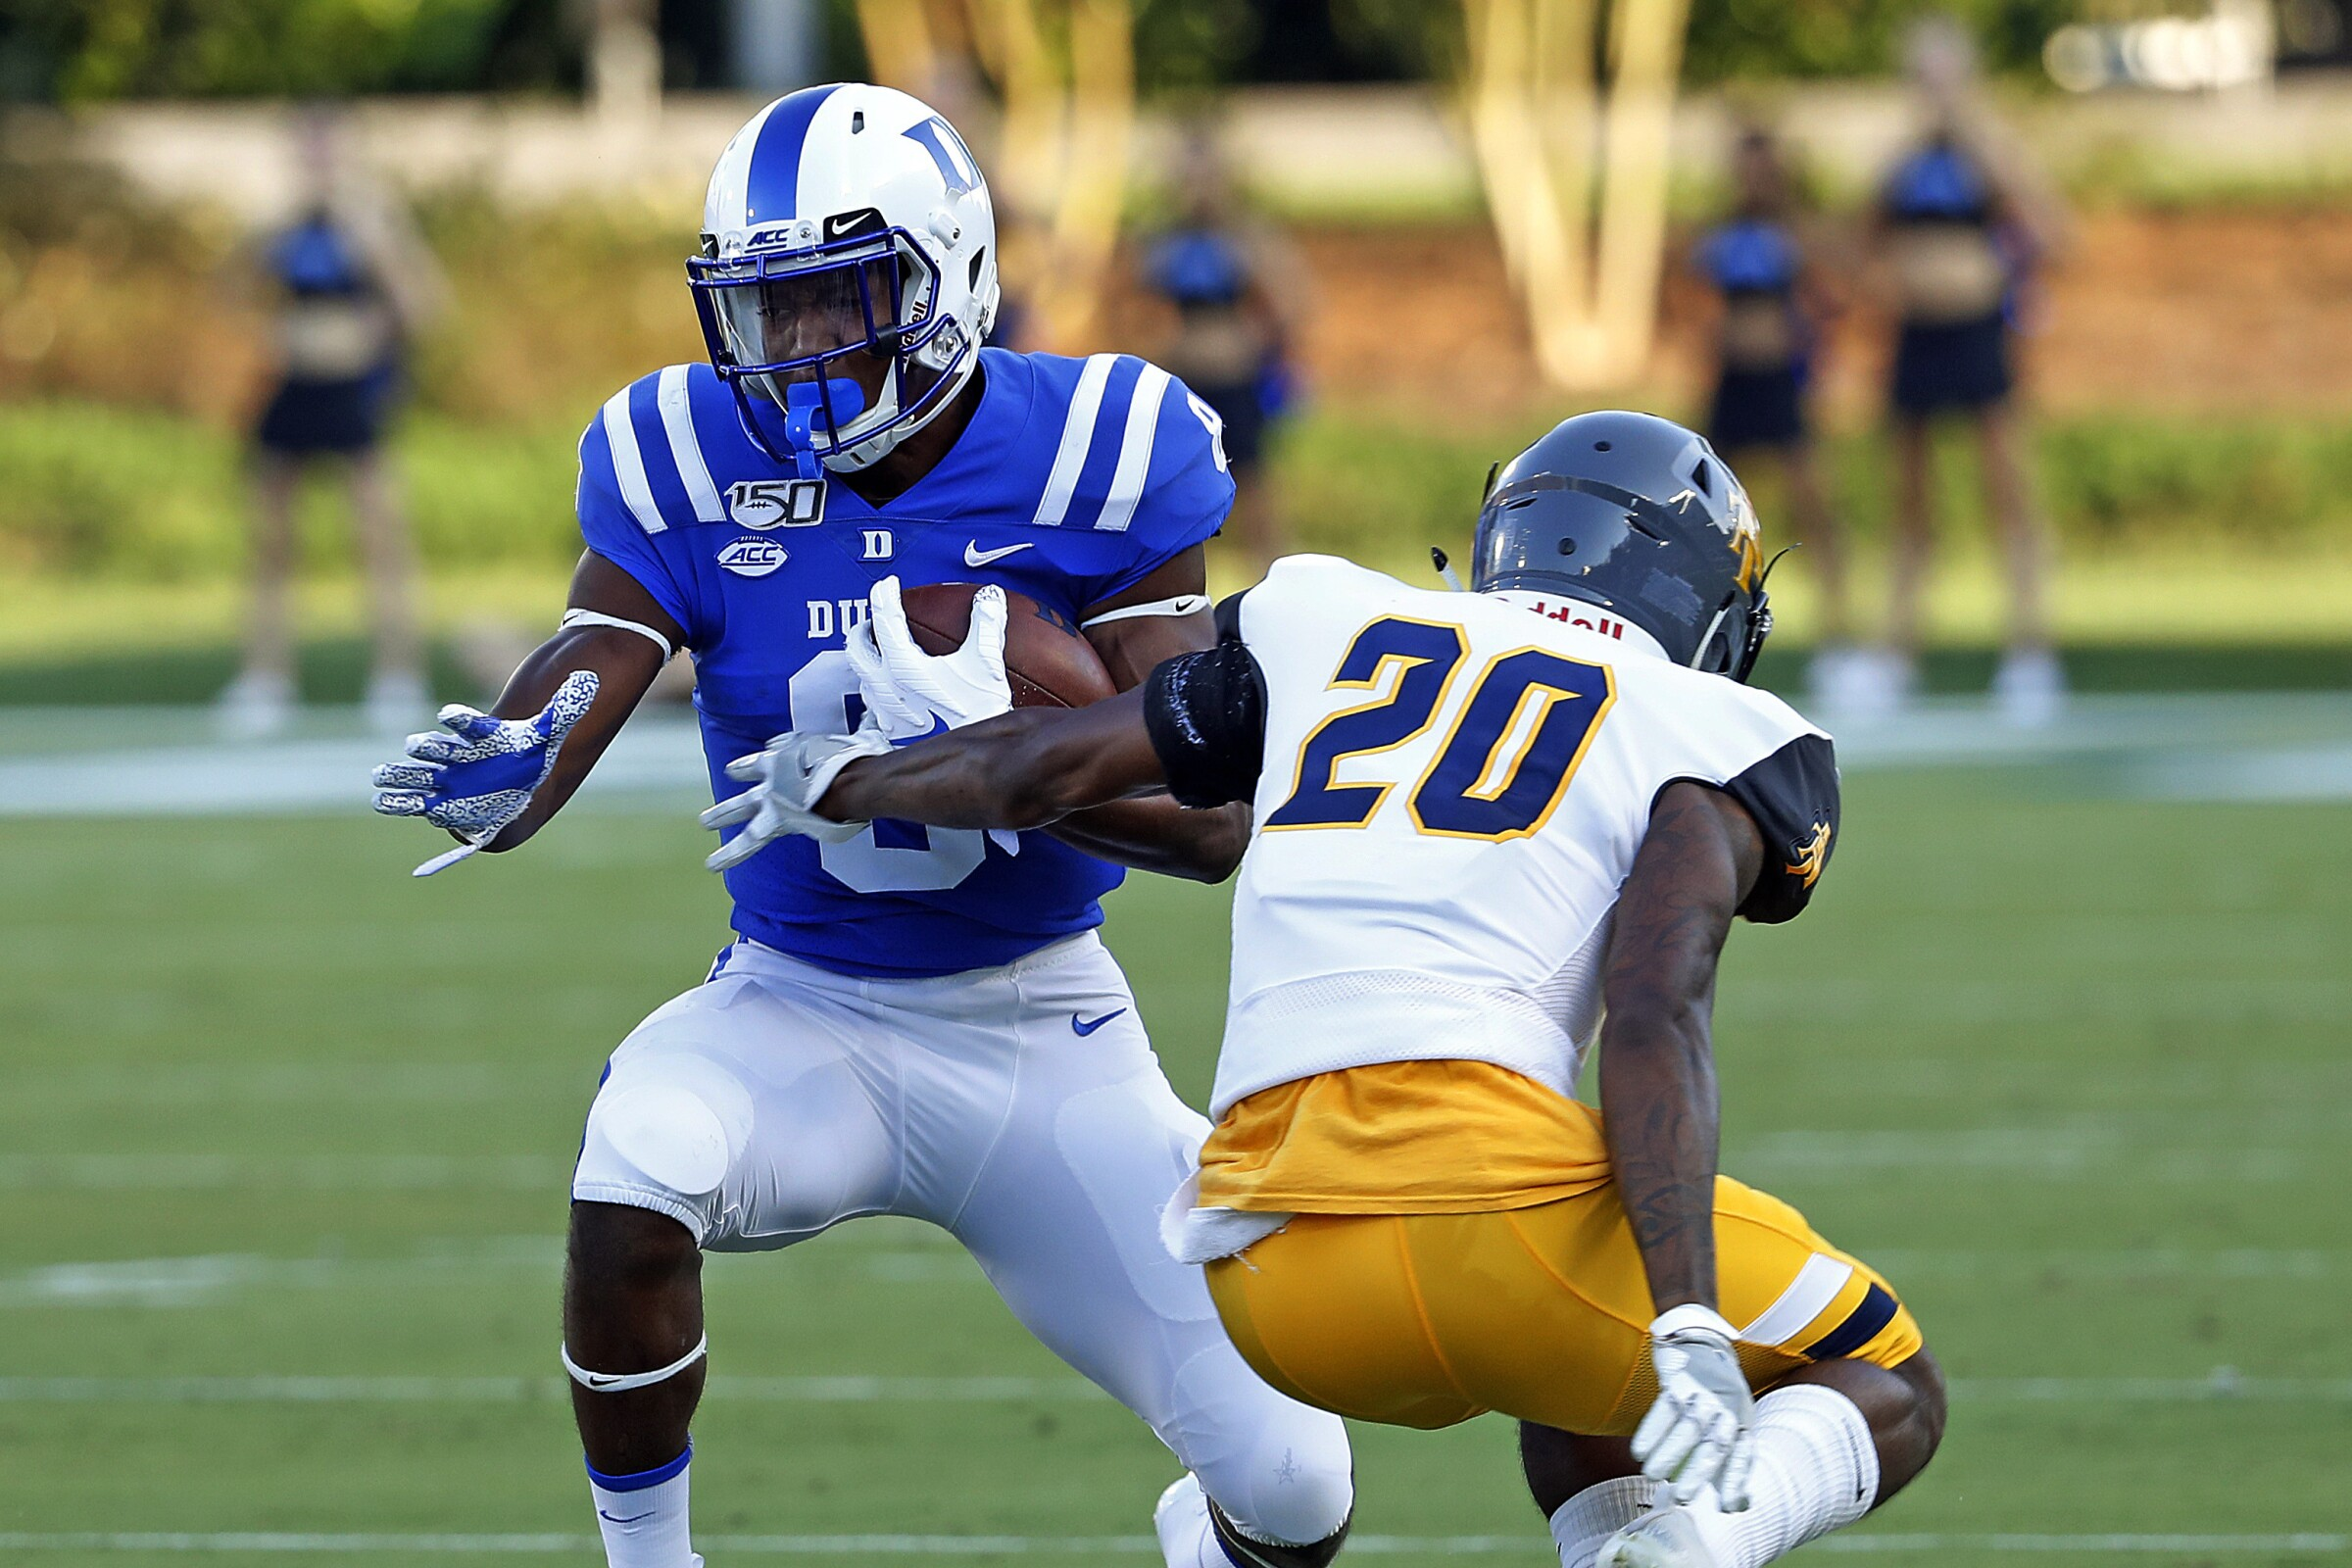 Duke's Brittain Brown (8) pulls away from North Carolina A&T's Najee Reams (20) .